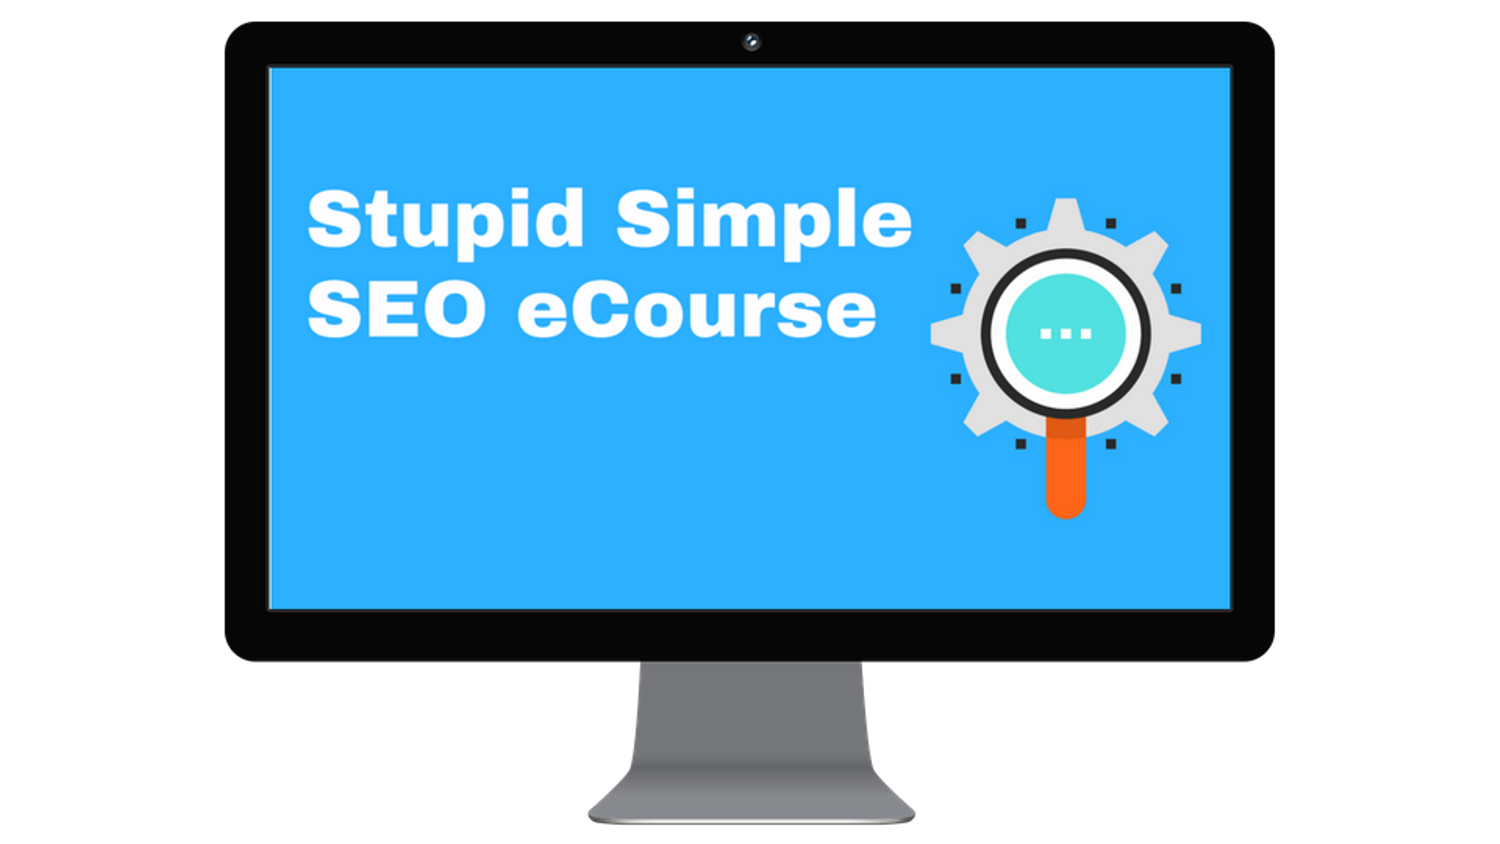 stupid simple seo course review via hazelhaven.com